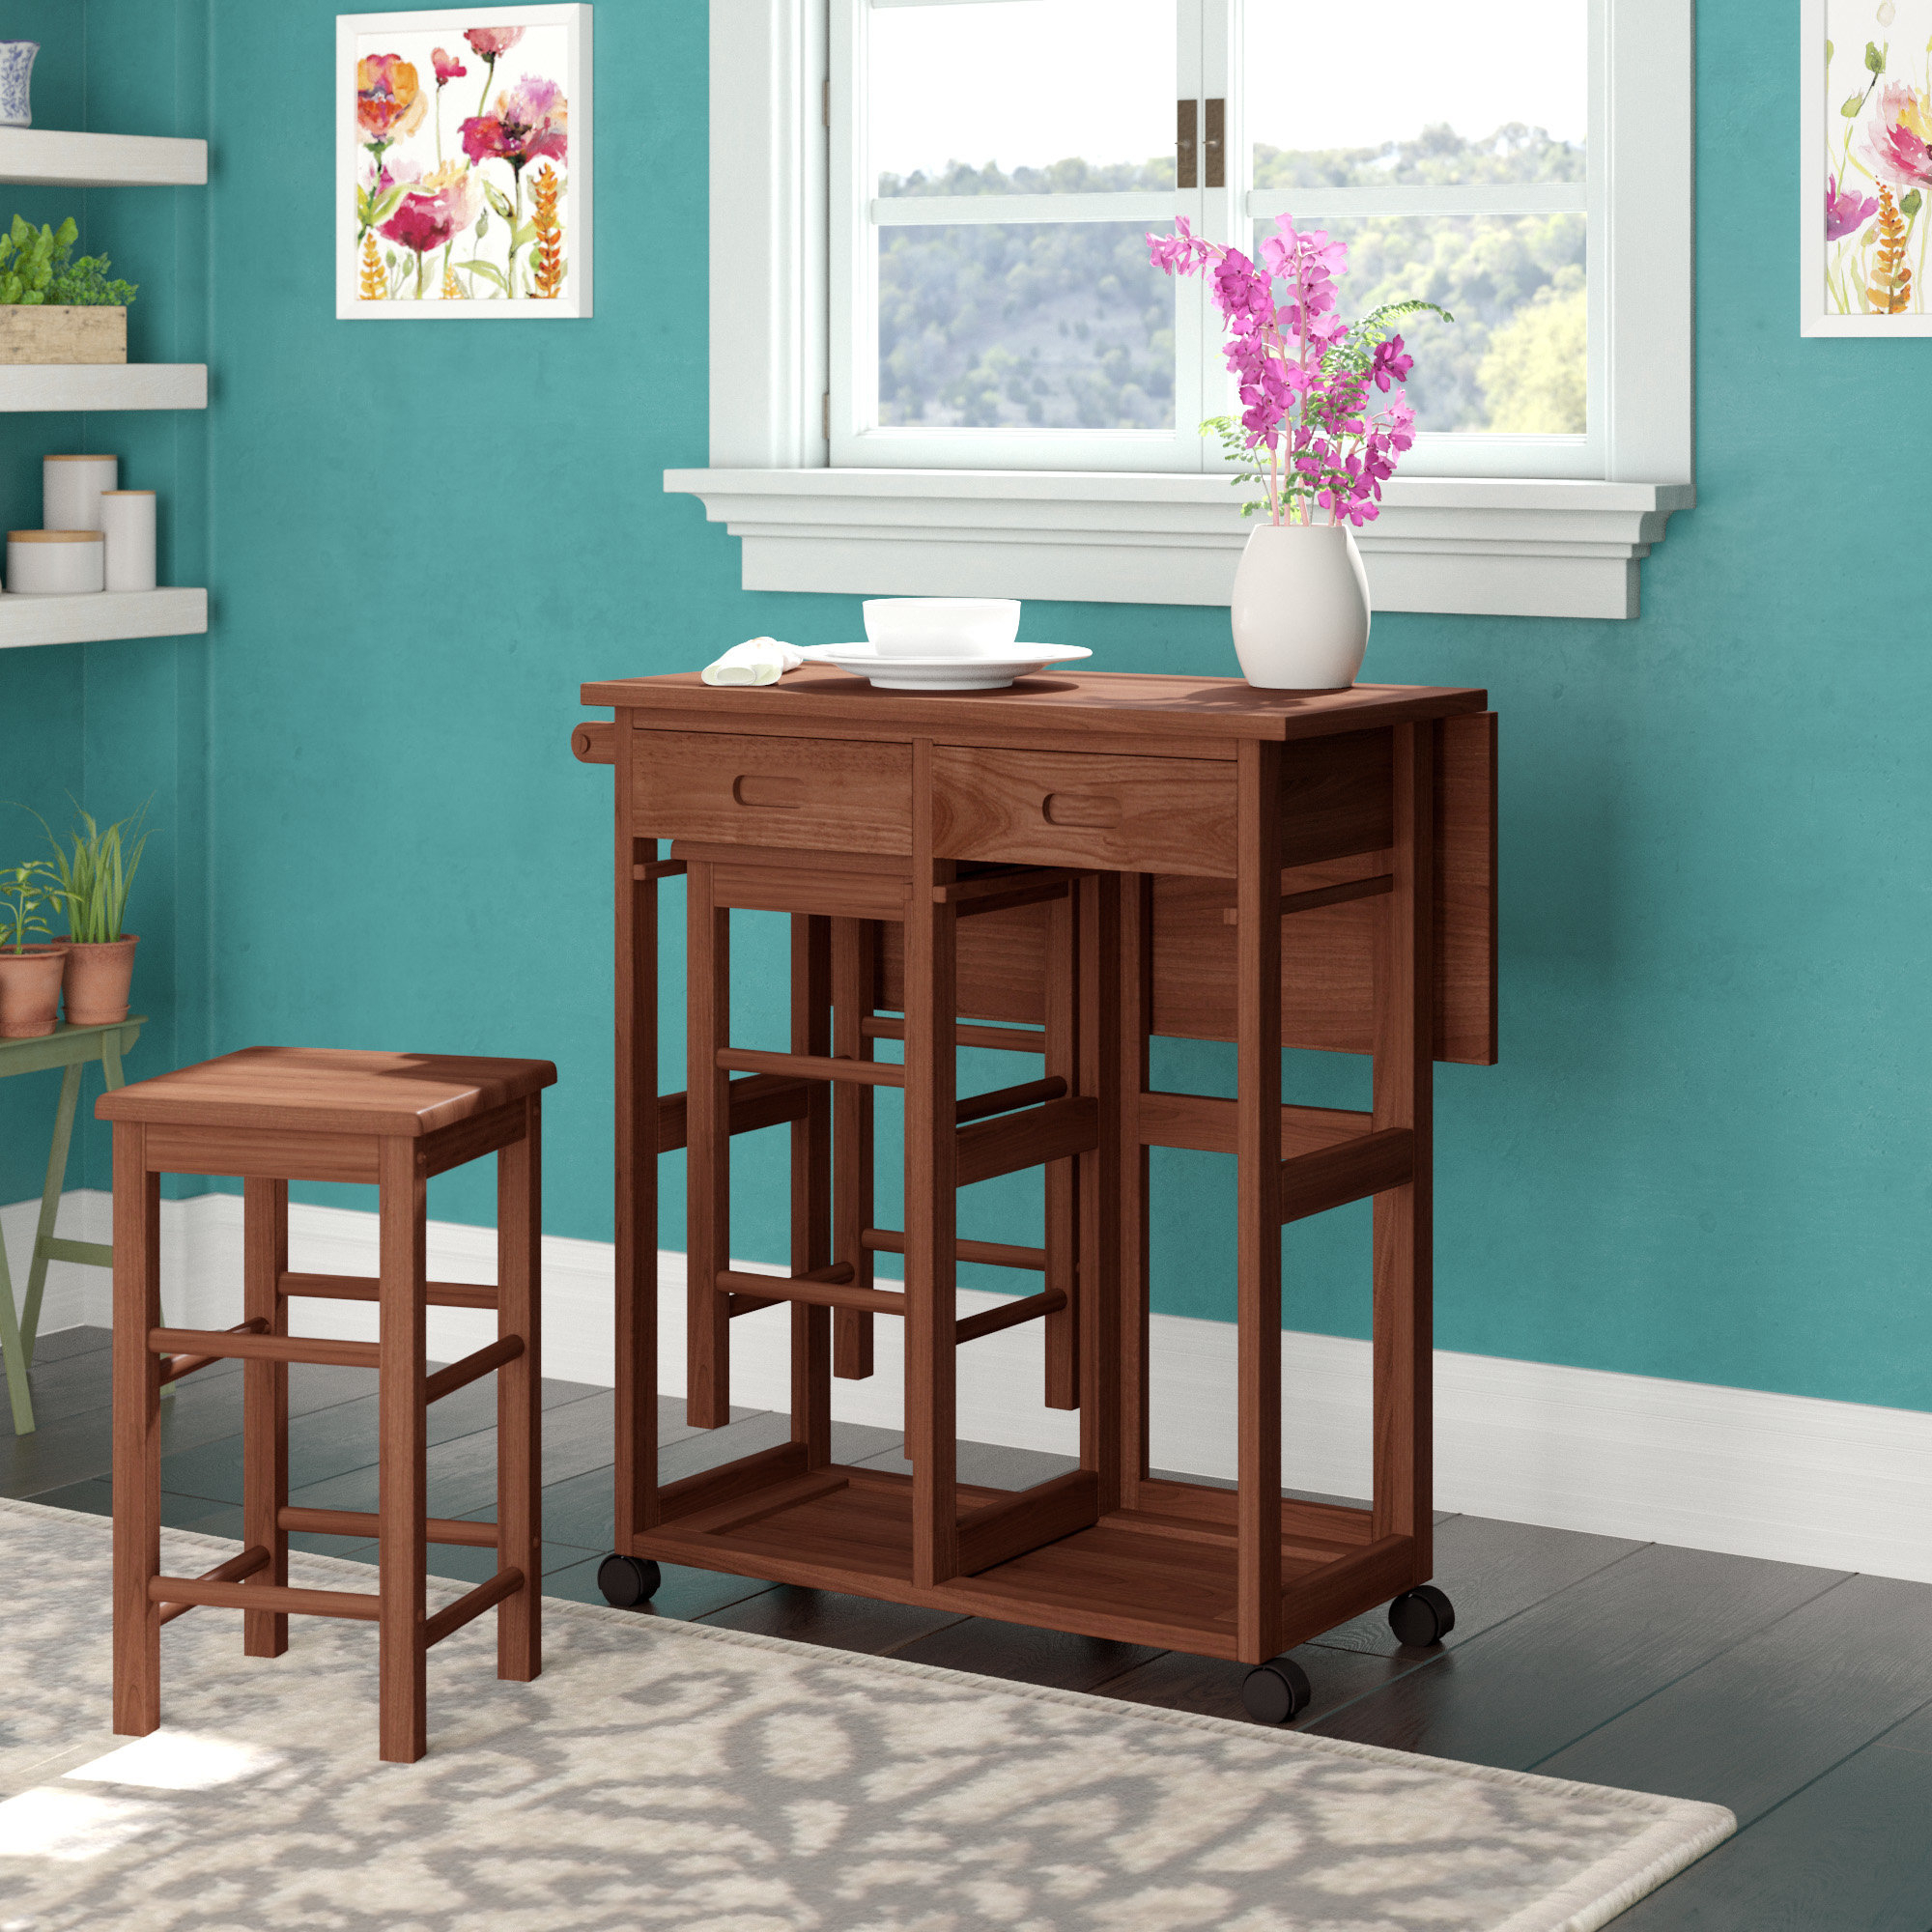 Newest Callaghan 3 Piece Drop Leaf Dining Set With Regard To Poynter 3 Piece Drop Leaf Dining Sets (Gallery 2 of 20)